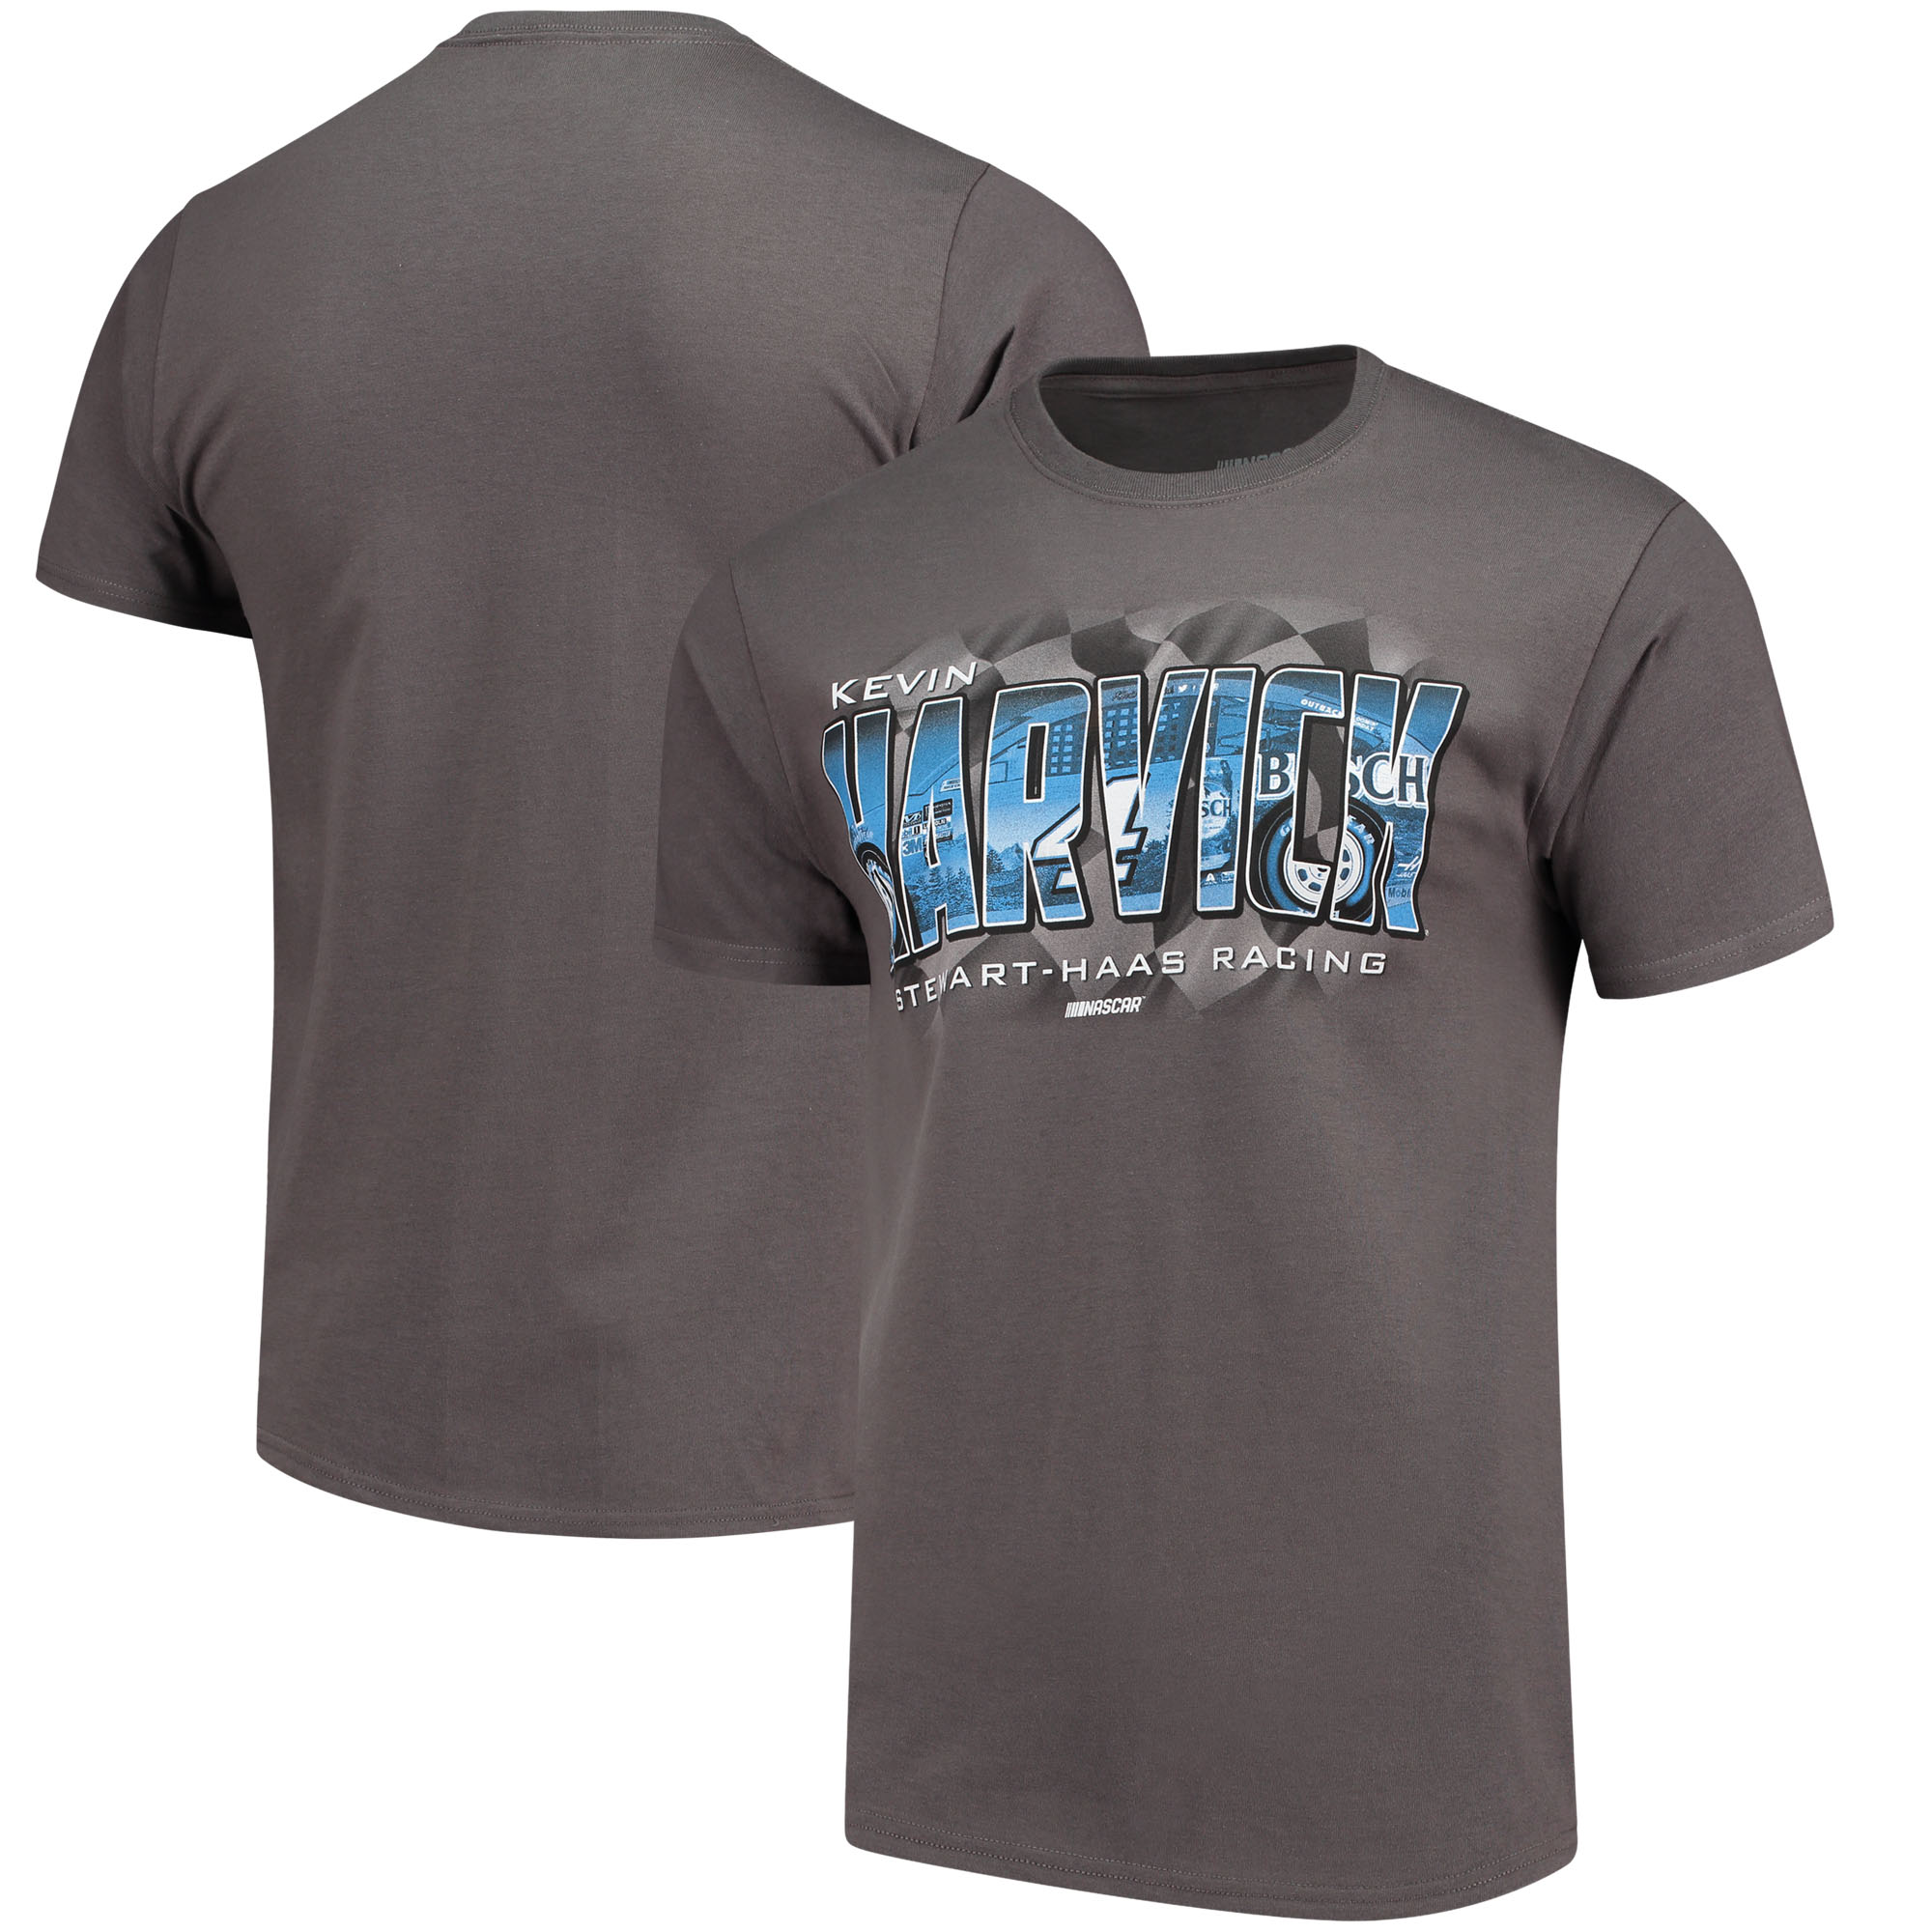 Kevin Harvick Checkered Flag Weekend Warrior T-Shirt - Charcoal